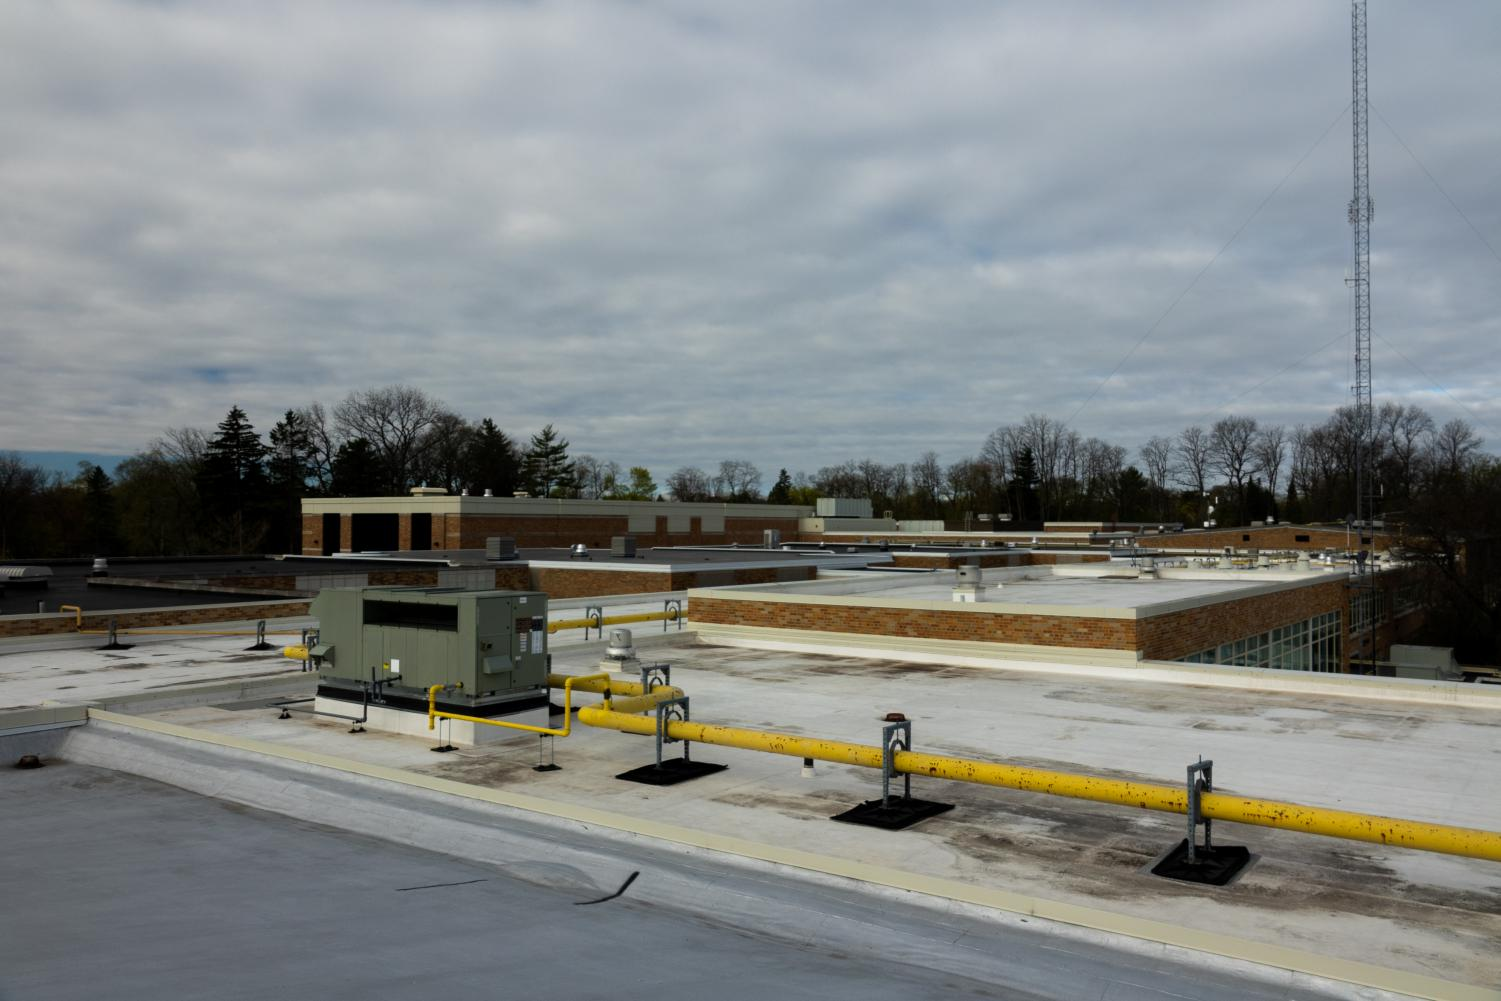 Accessed by a staircase that leads through the building and grounds areas, the roof of LHS has been largely updated since the building's original construction. The frontmost area pictured above was part of the original building plan, but the majority of the areas in the back were added on later, according to Mr. Stancil.